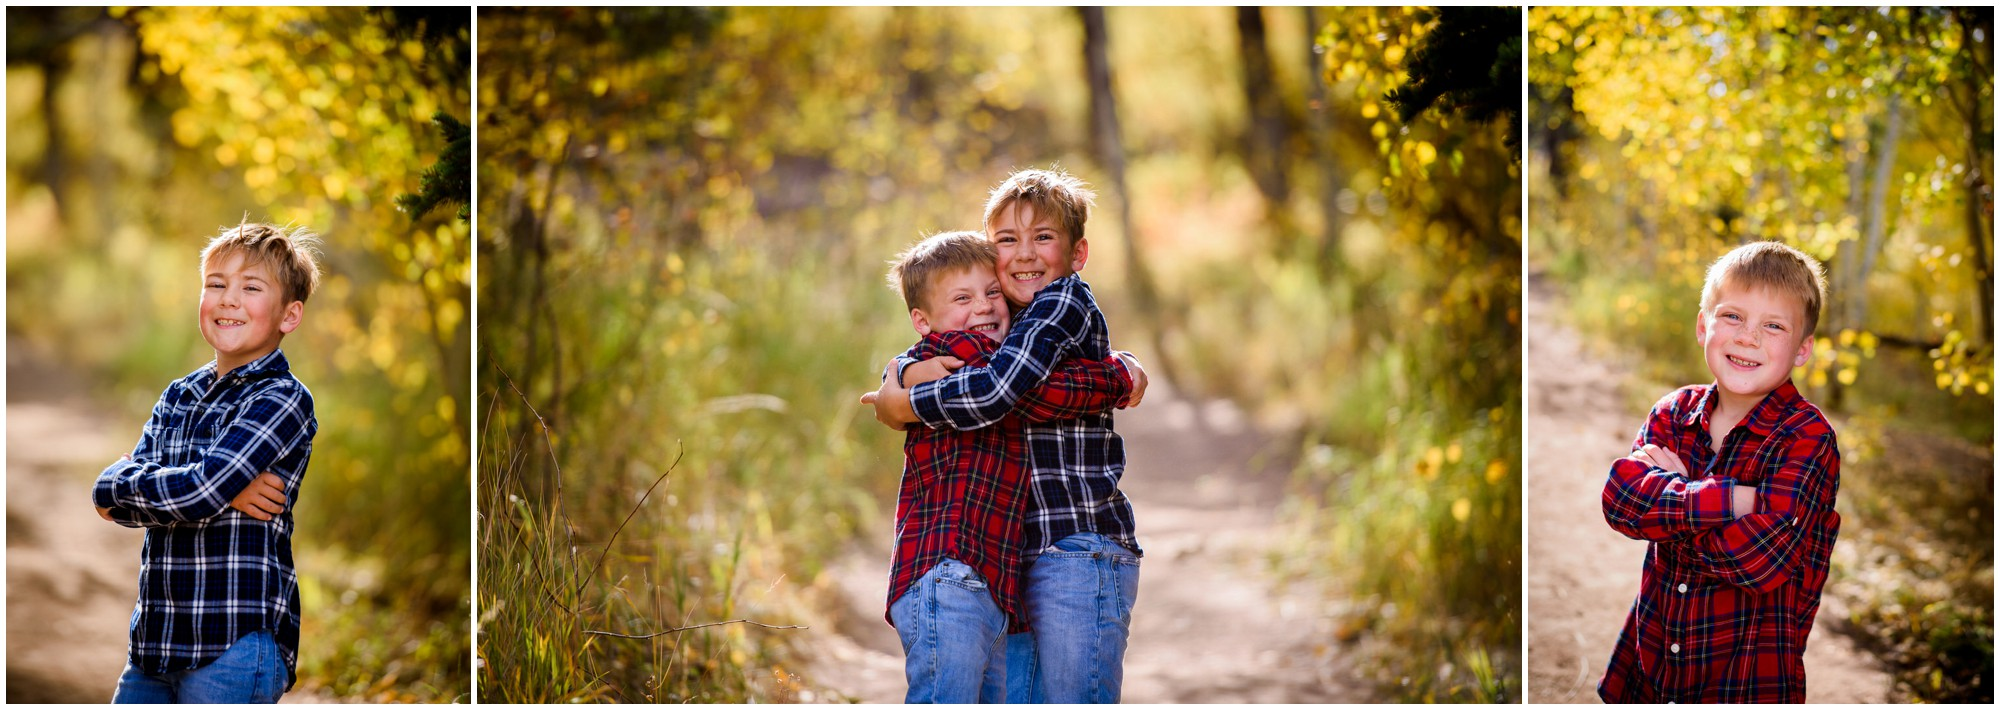 41-colorado-fall-meyer-ranch-family-photos-webster.jpg